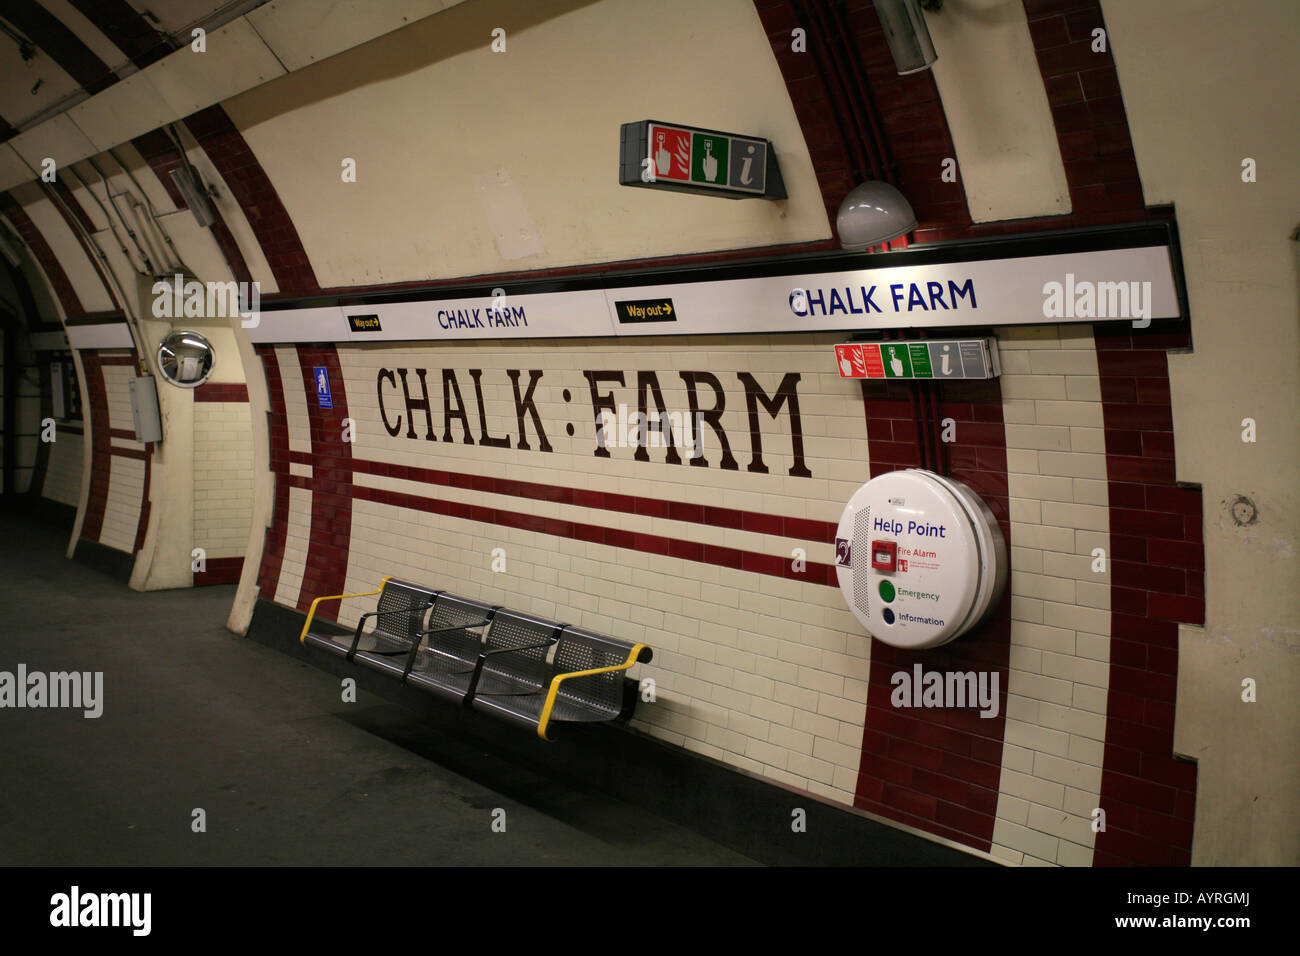 Chalk Farm tube station, London Underground, London, England, UK - Stock Image